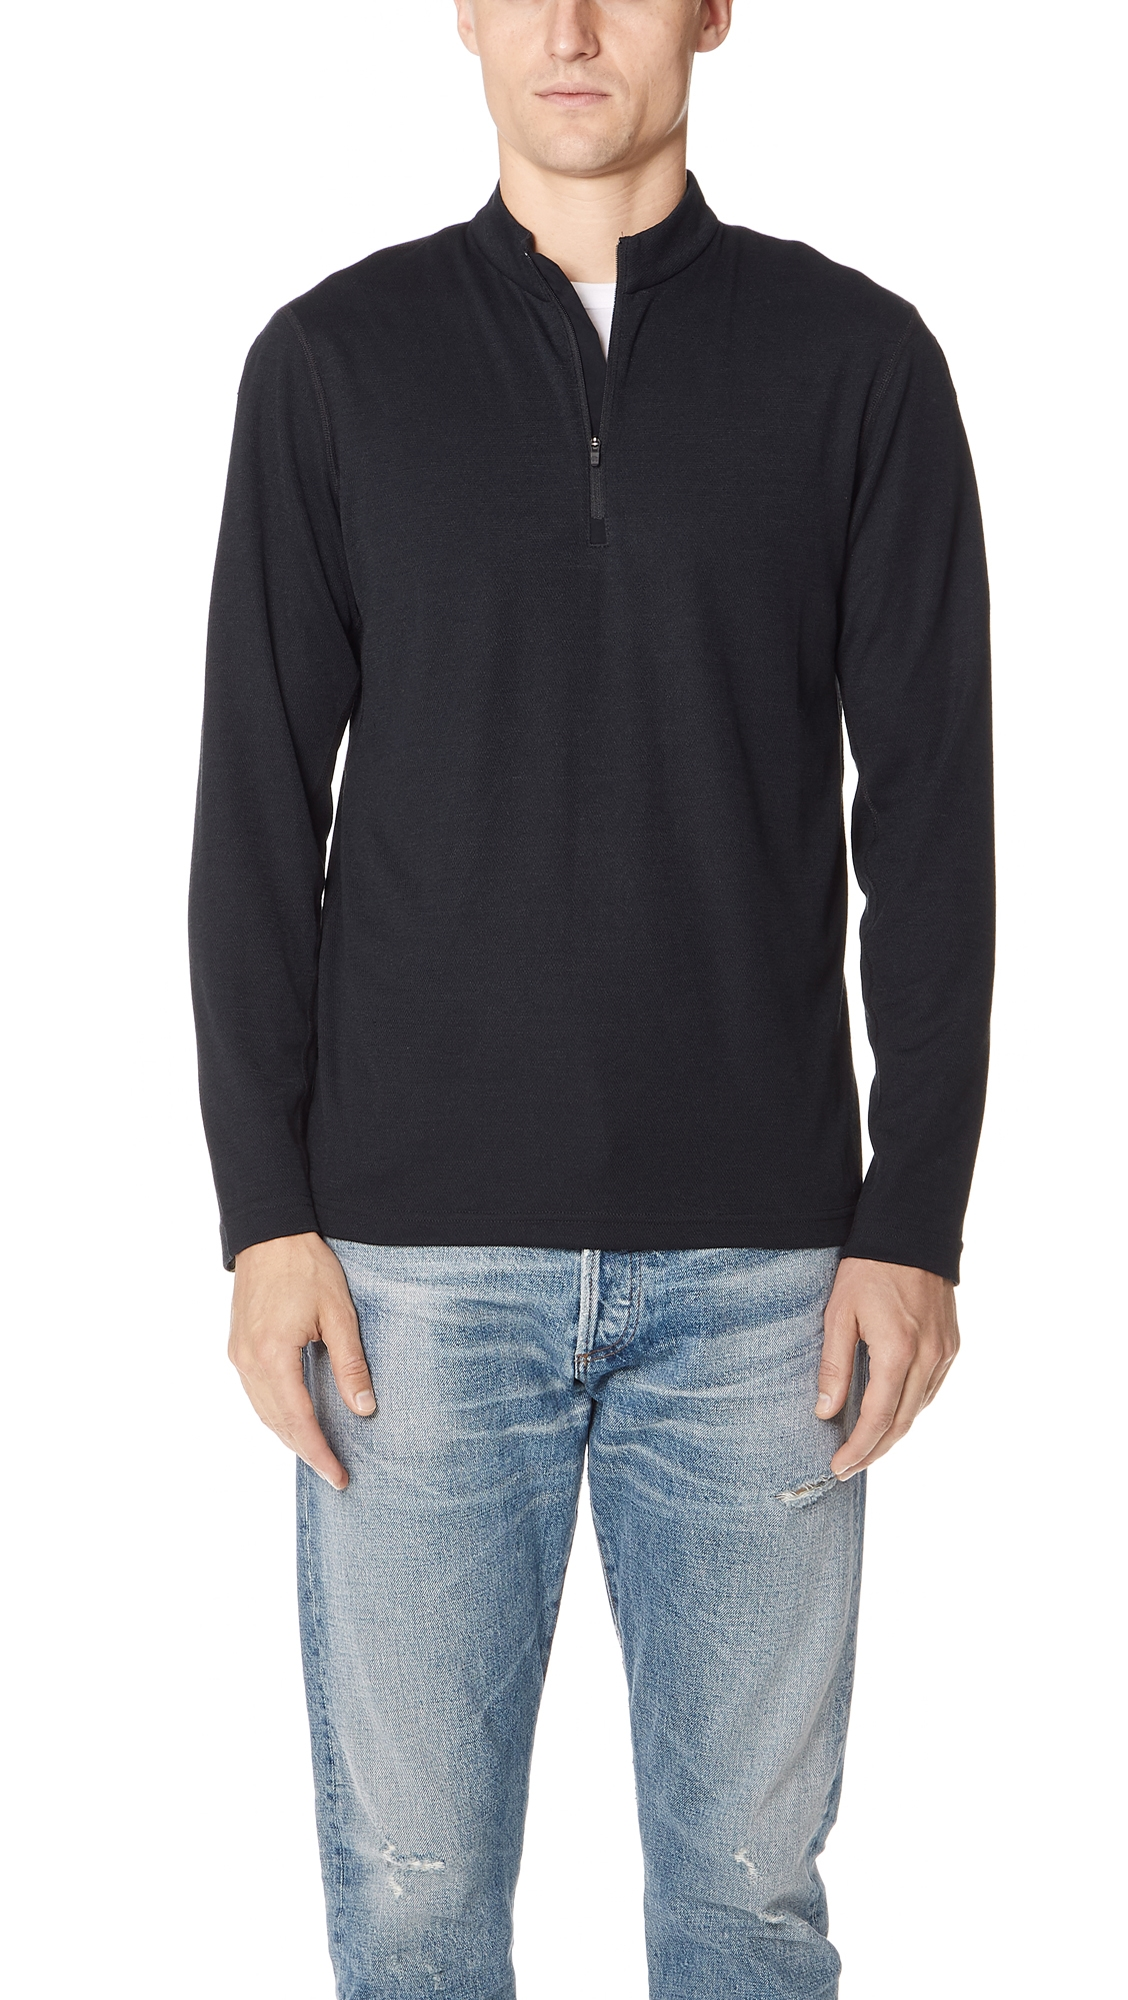 REIGNING CHAMP DRY TRAIL SHIRT